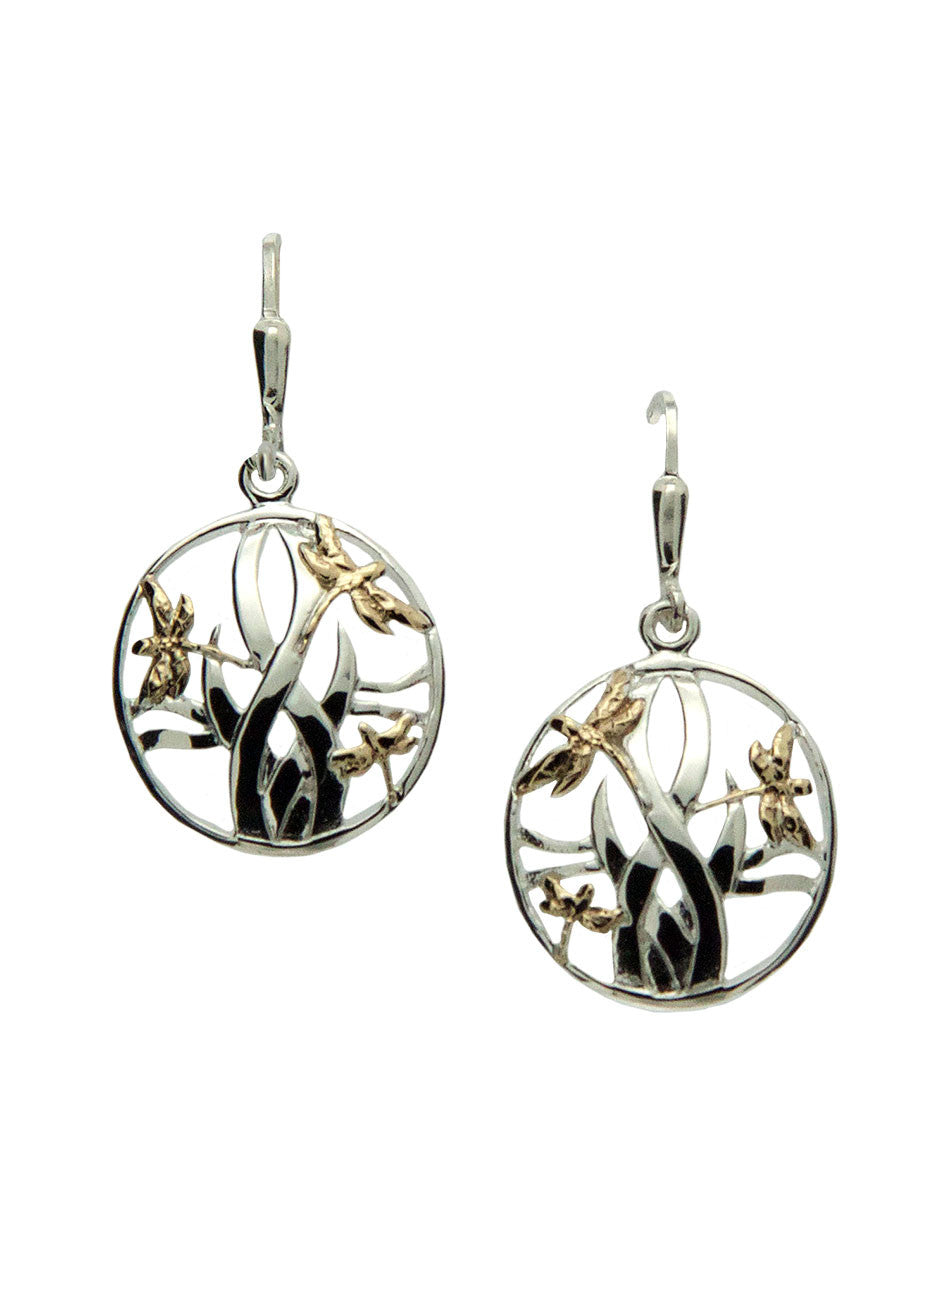 Dragonfly in Reeds Earrings